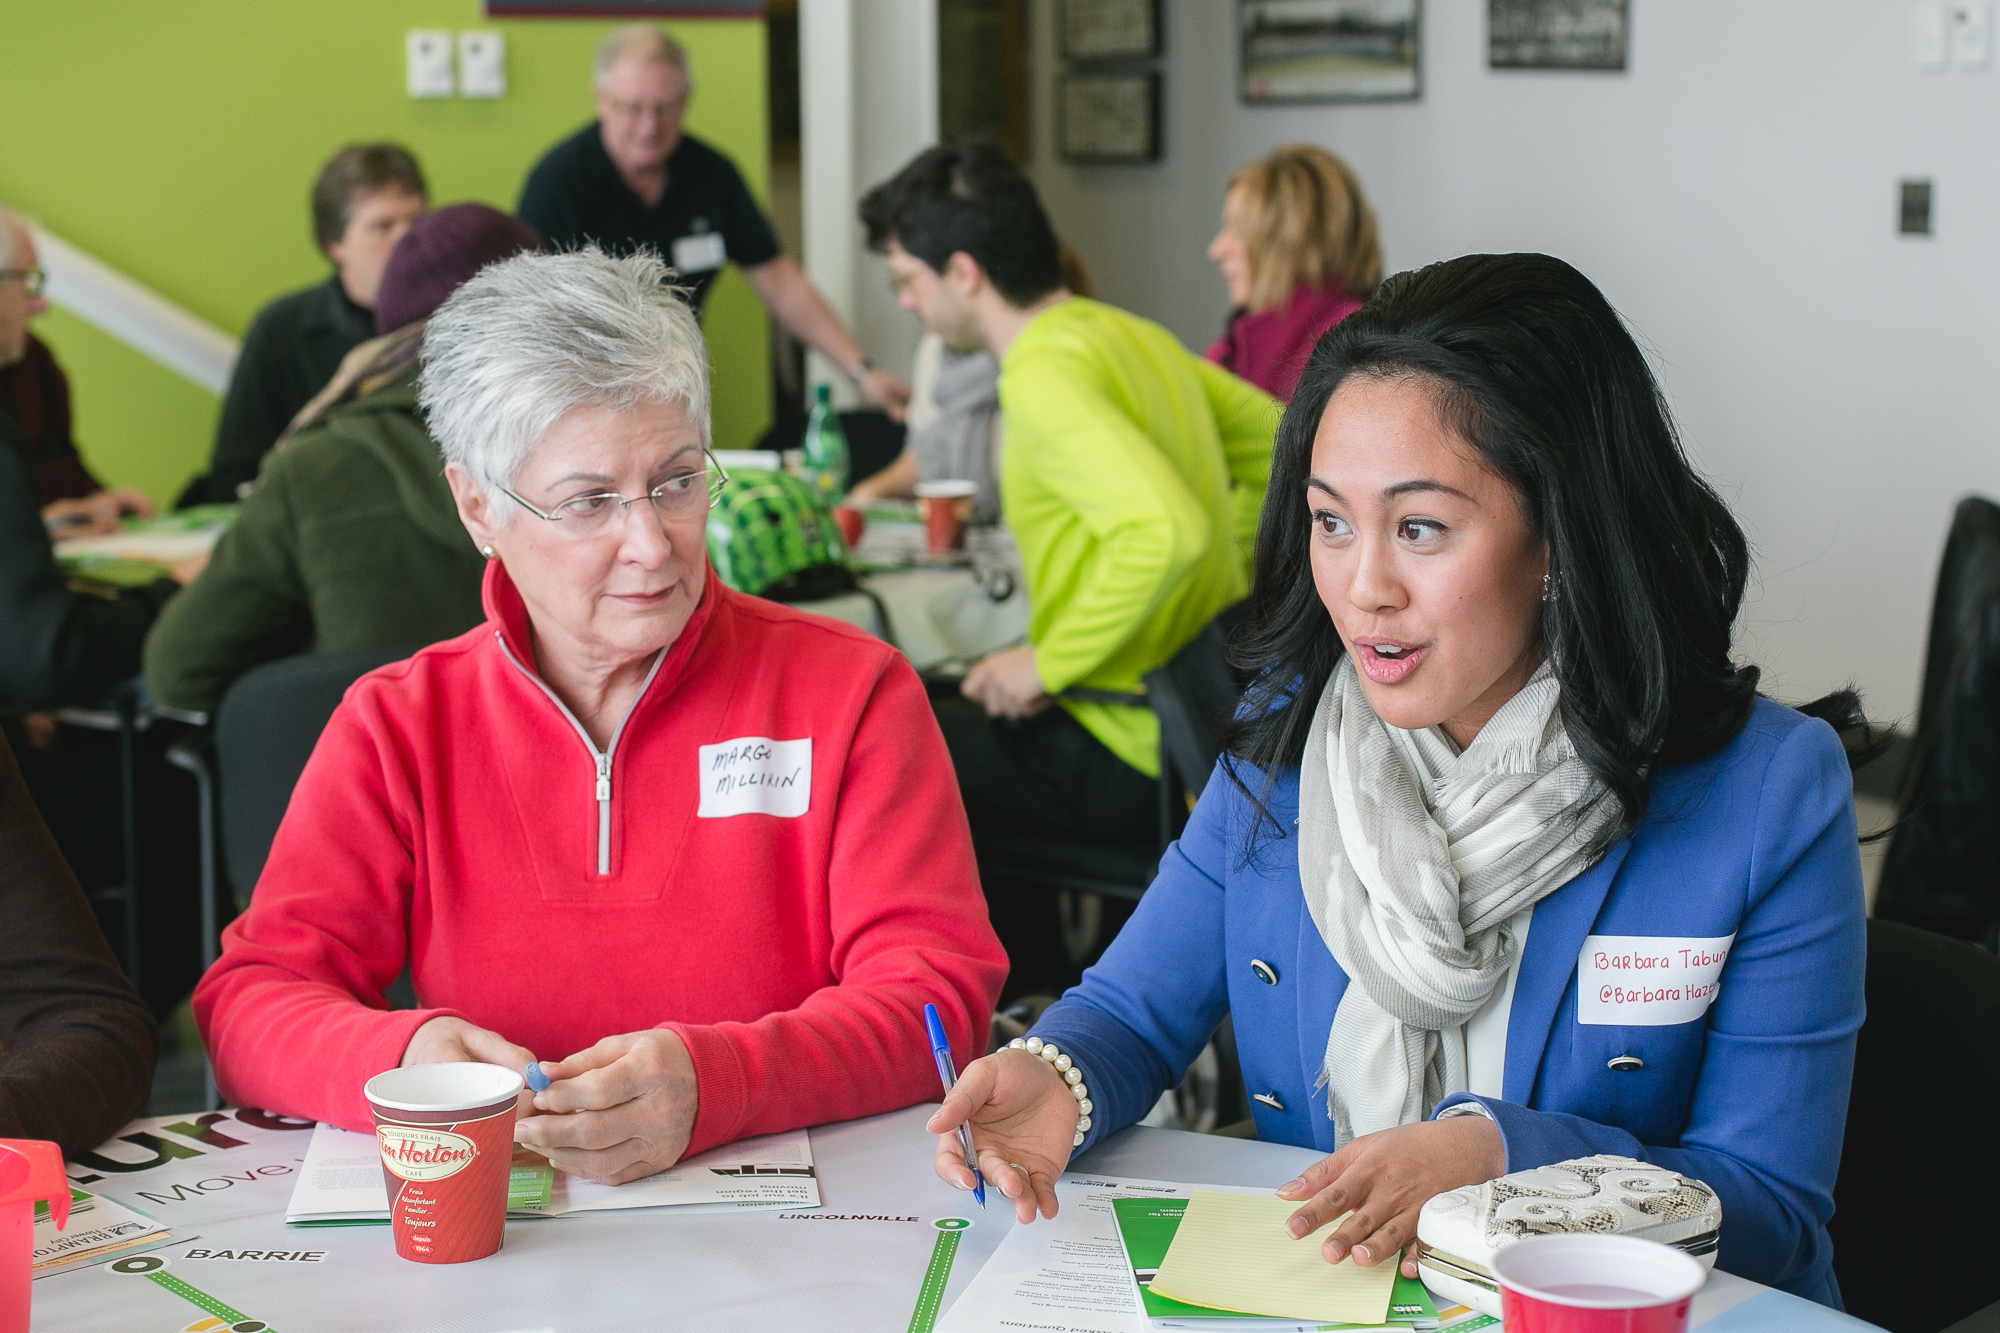 Two participants at the Public Roundtable meetings discuss transit priorities